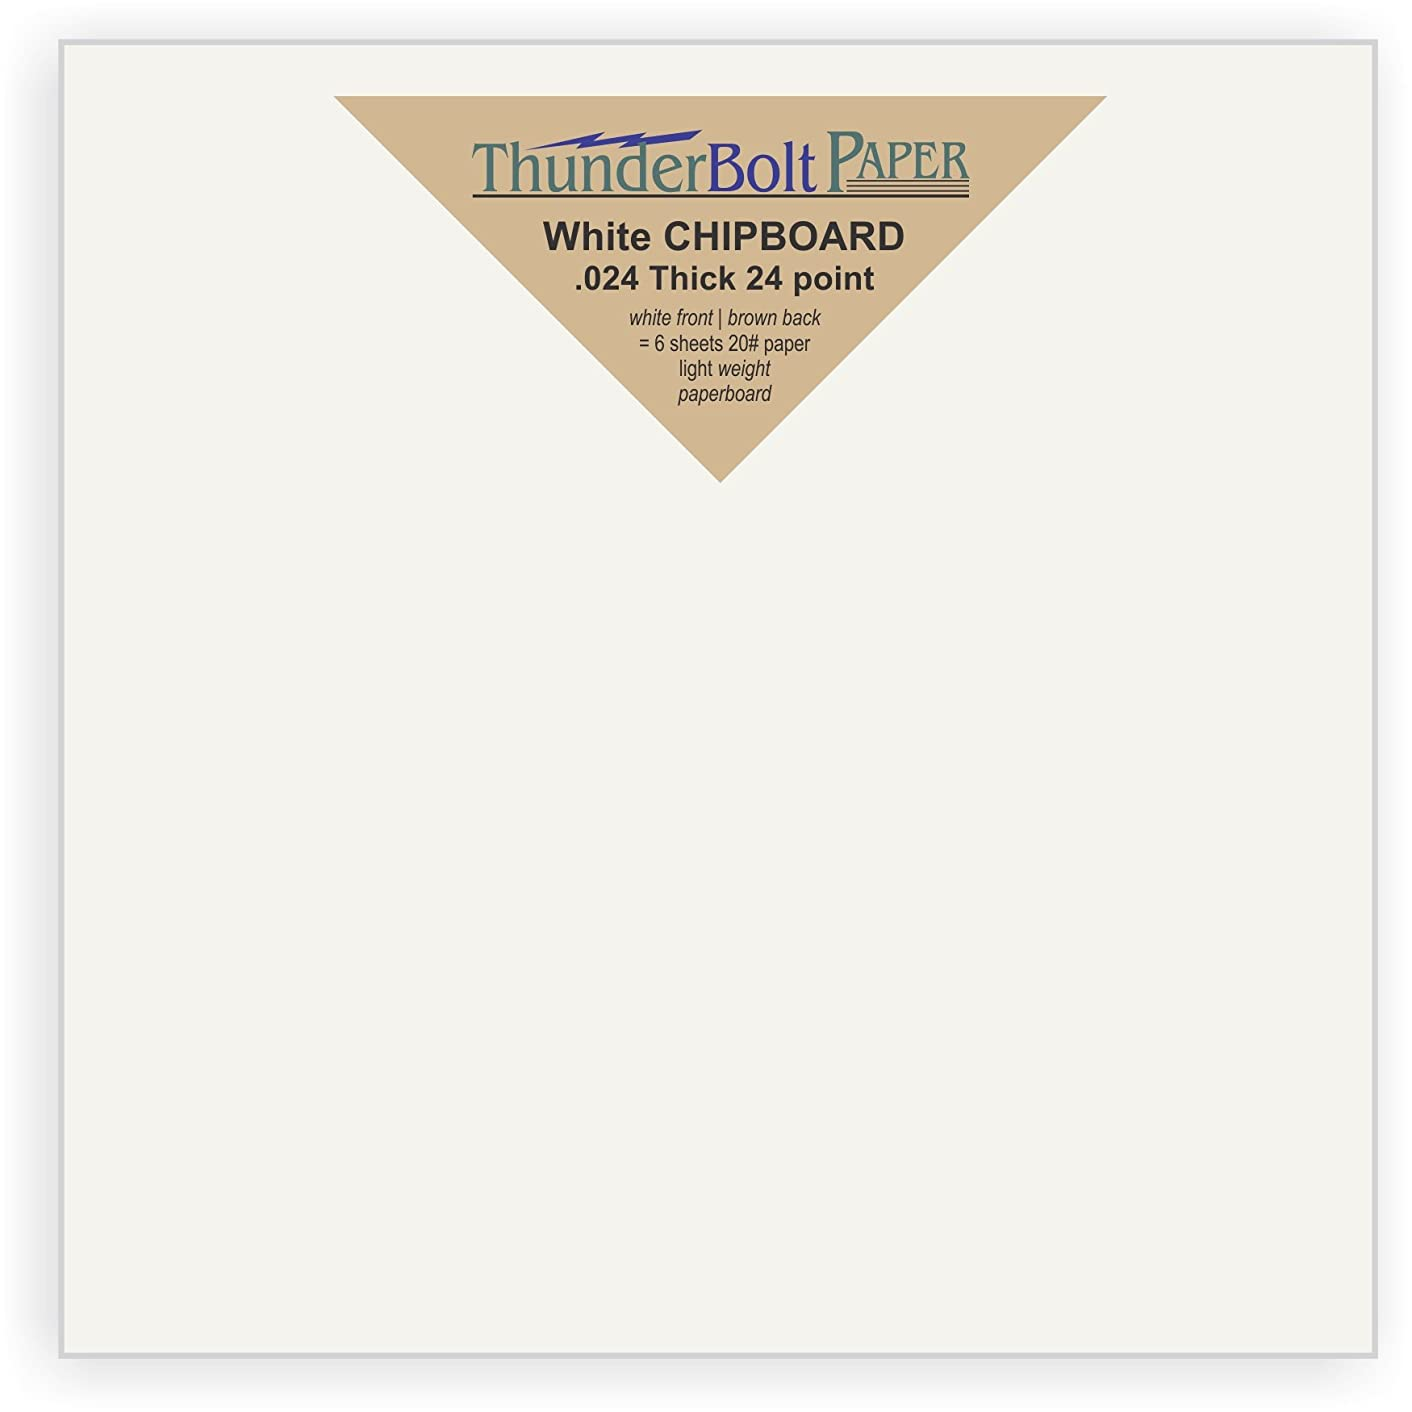 25 Sheets Chipboard 24pt white 1 side - 6